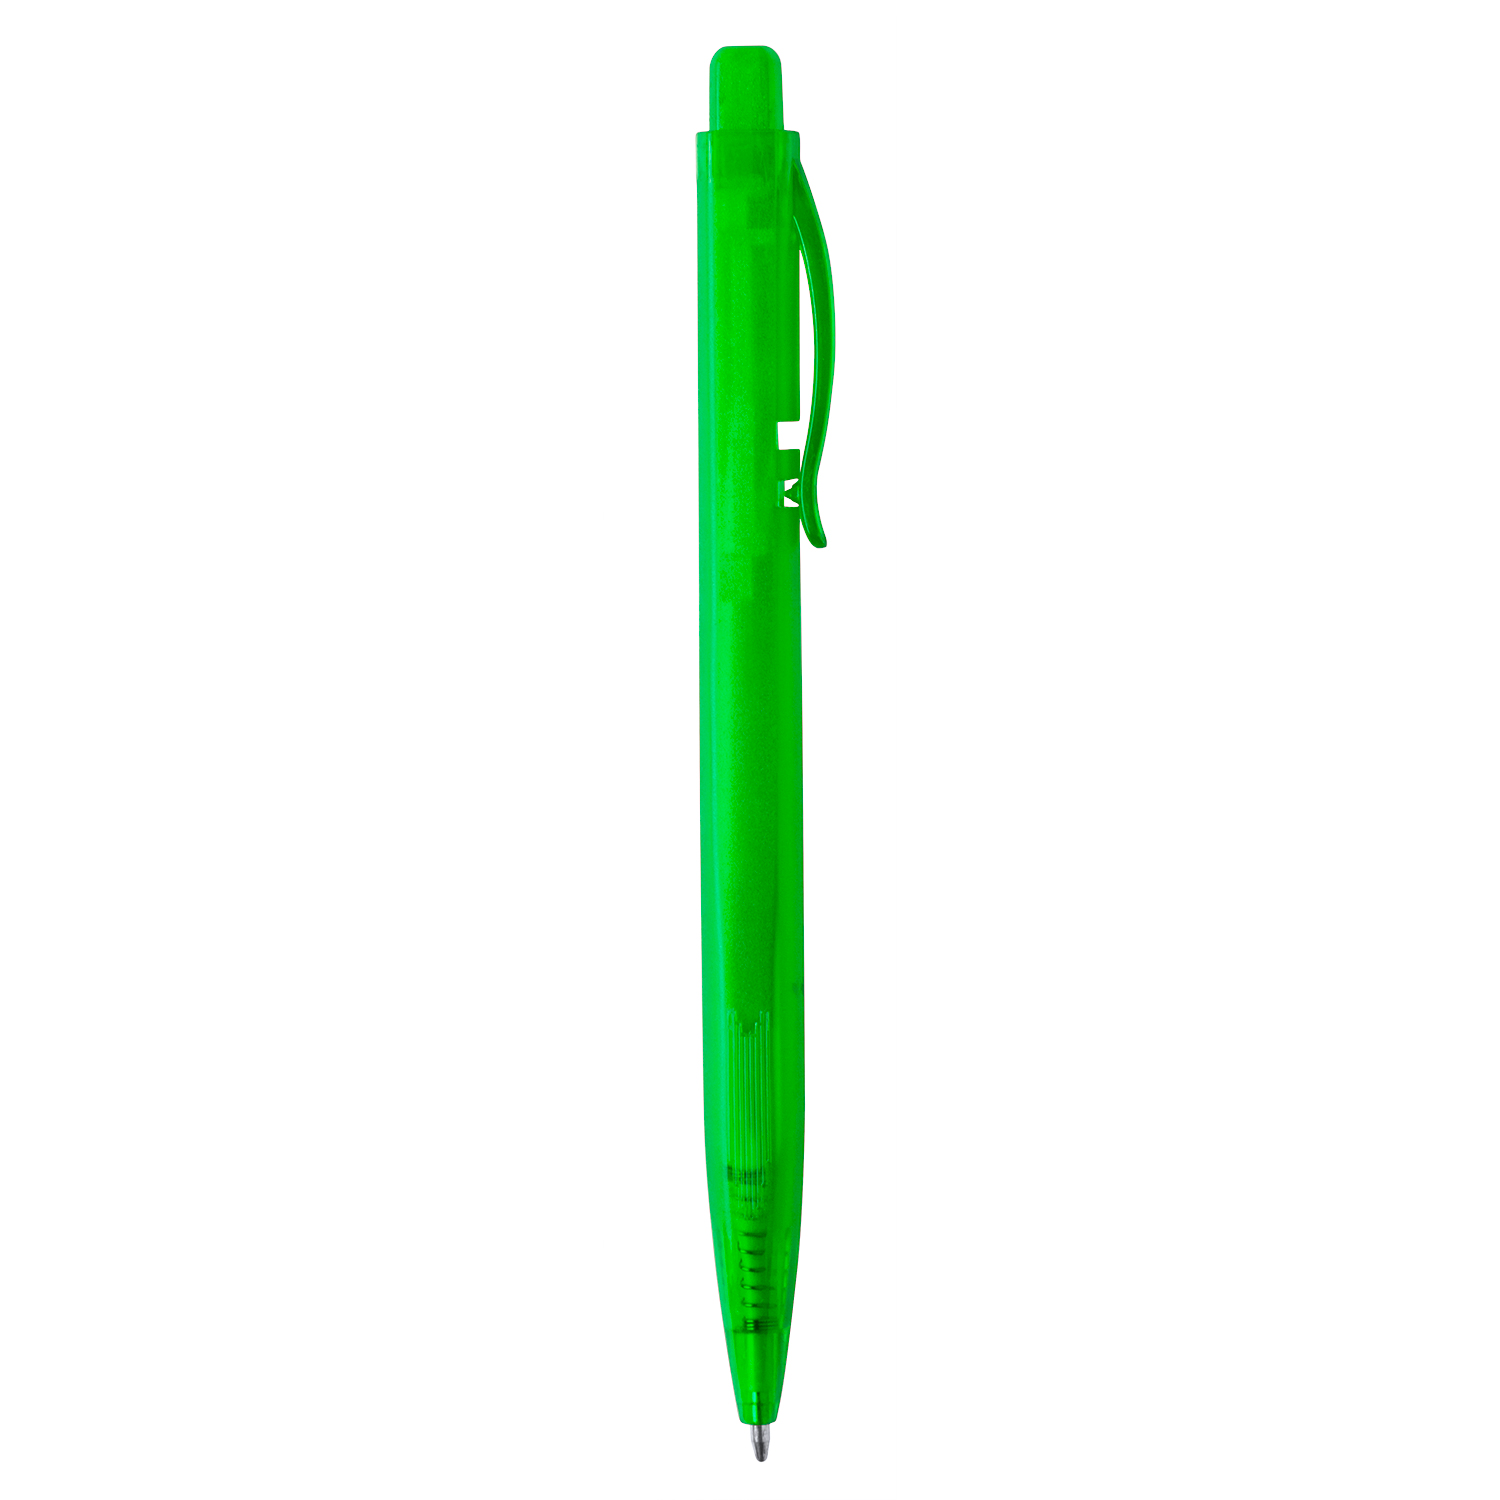 Plastic Pen 997 (plastic ball pen with blue ink) - hmi20997-09 (Green)